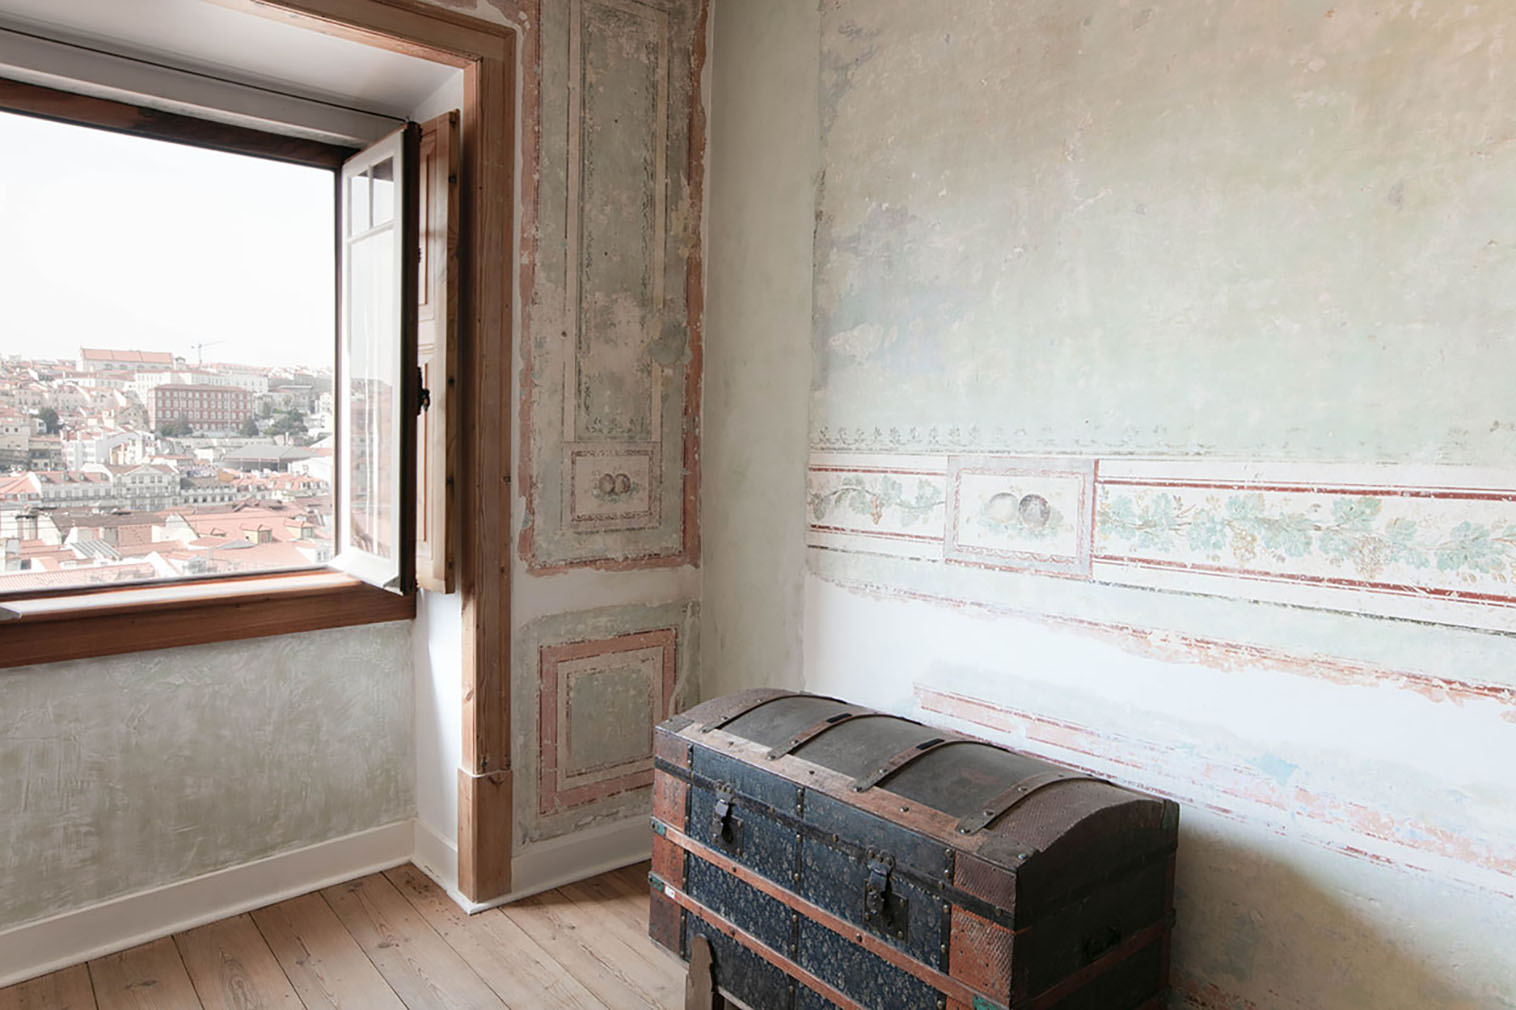 Frescoes have been lovingly revealed them throughout each of its three rooms, and have installed an Italian exposed cable electric system, with ceramic switches, to protect them from damage while updating the apartment's wiring